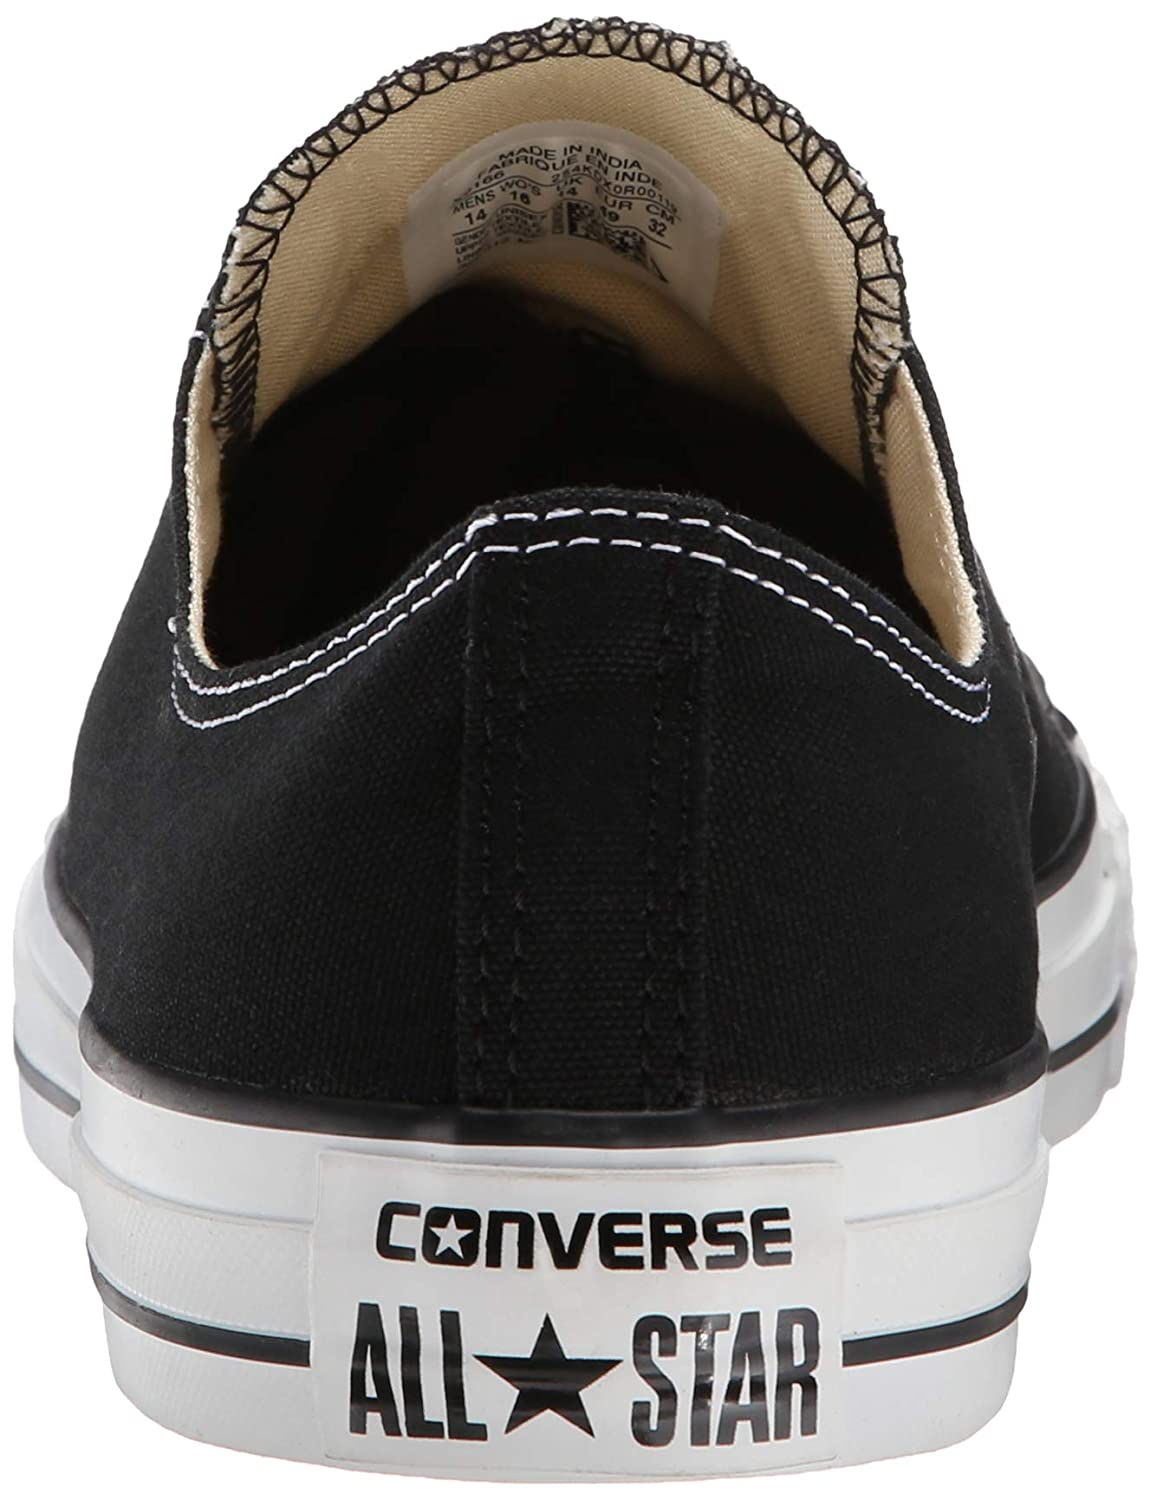 Converse Designer Chucks Schuhe All Star Converse Amazon De